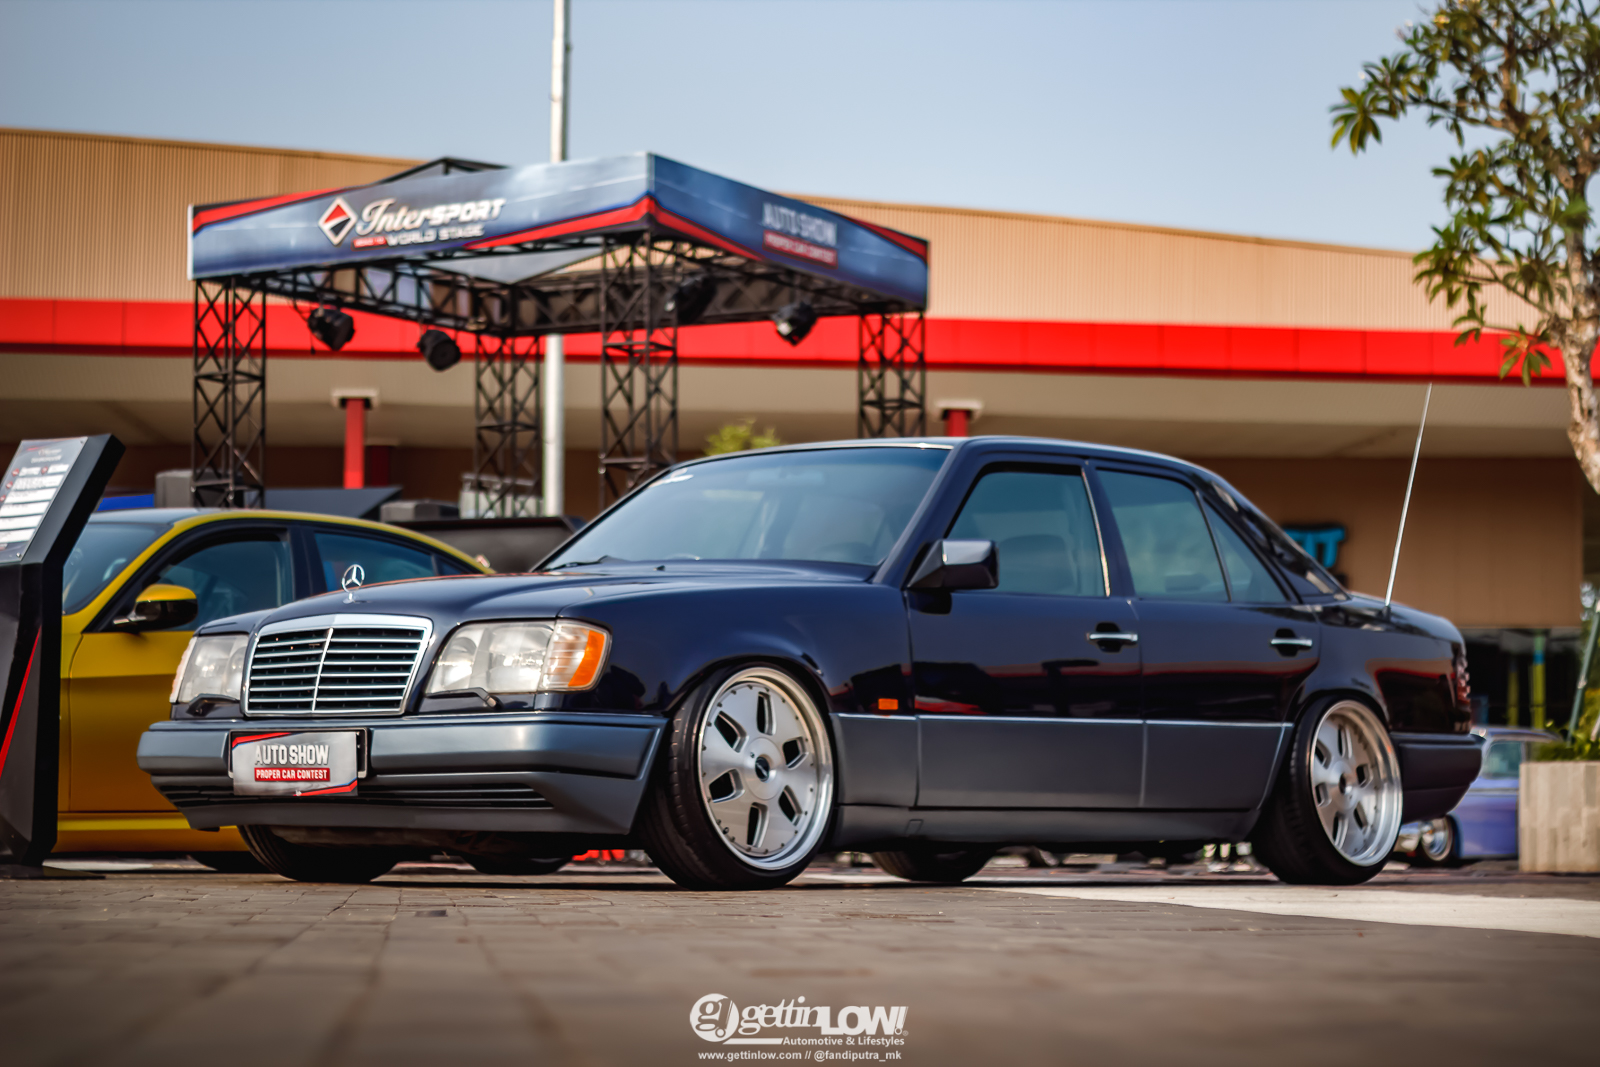 INTERSPORT-PROPERCARCONTEST-QBIG-CANON-122